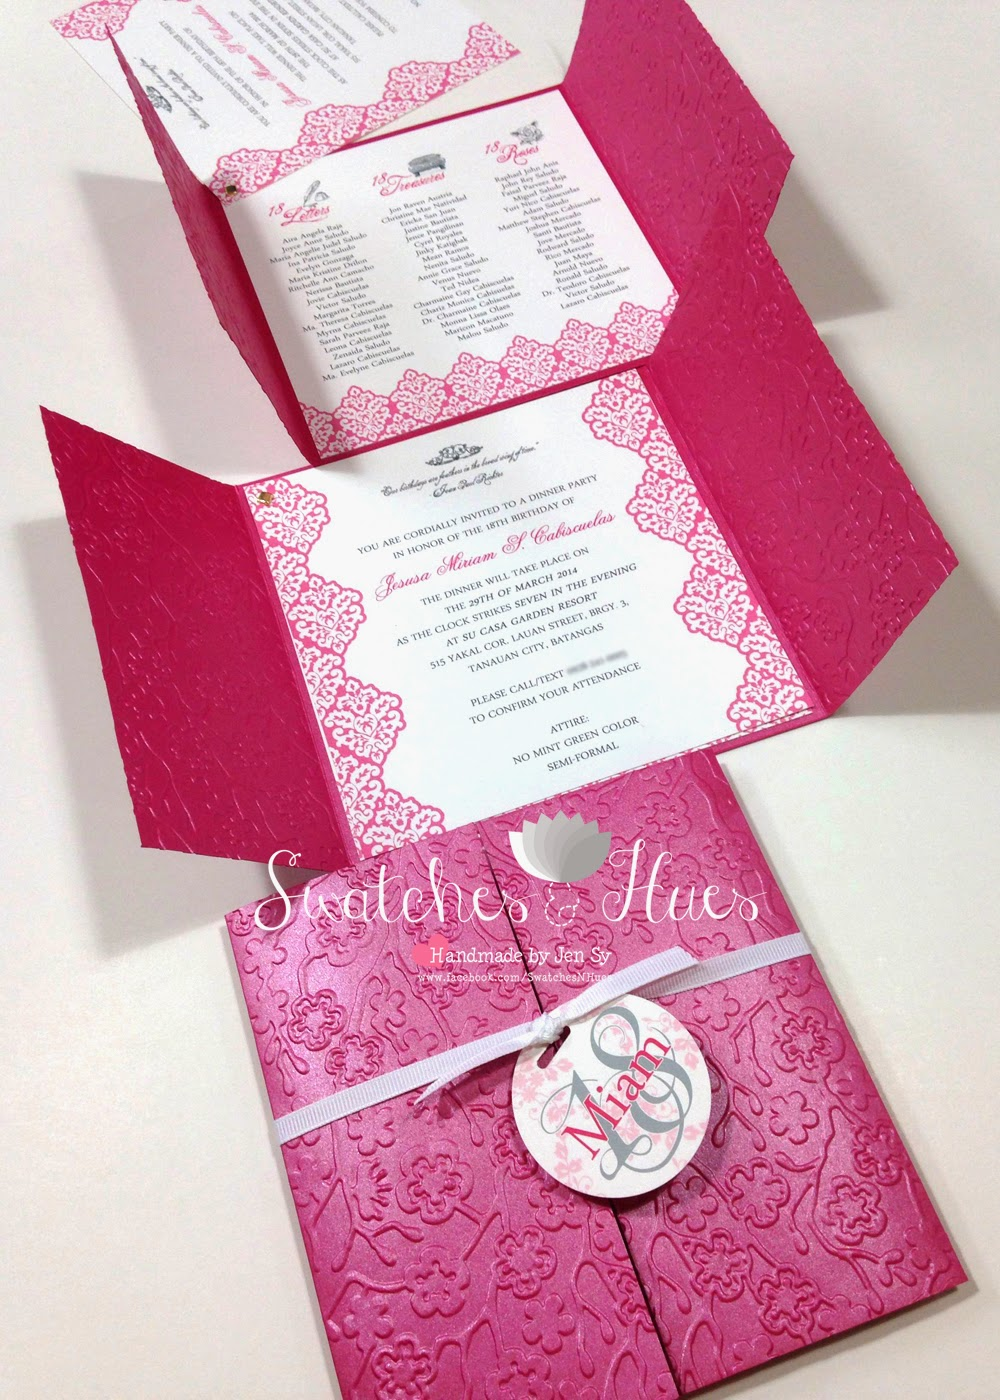 Swatches & Hues : Handmade with TLC: Princess theme gate ...